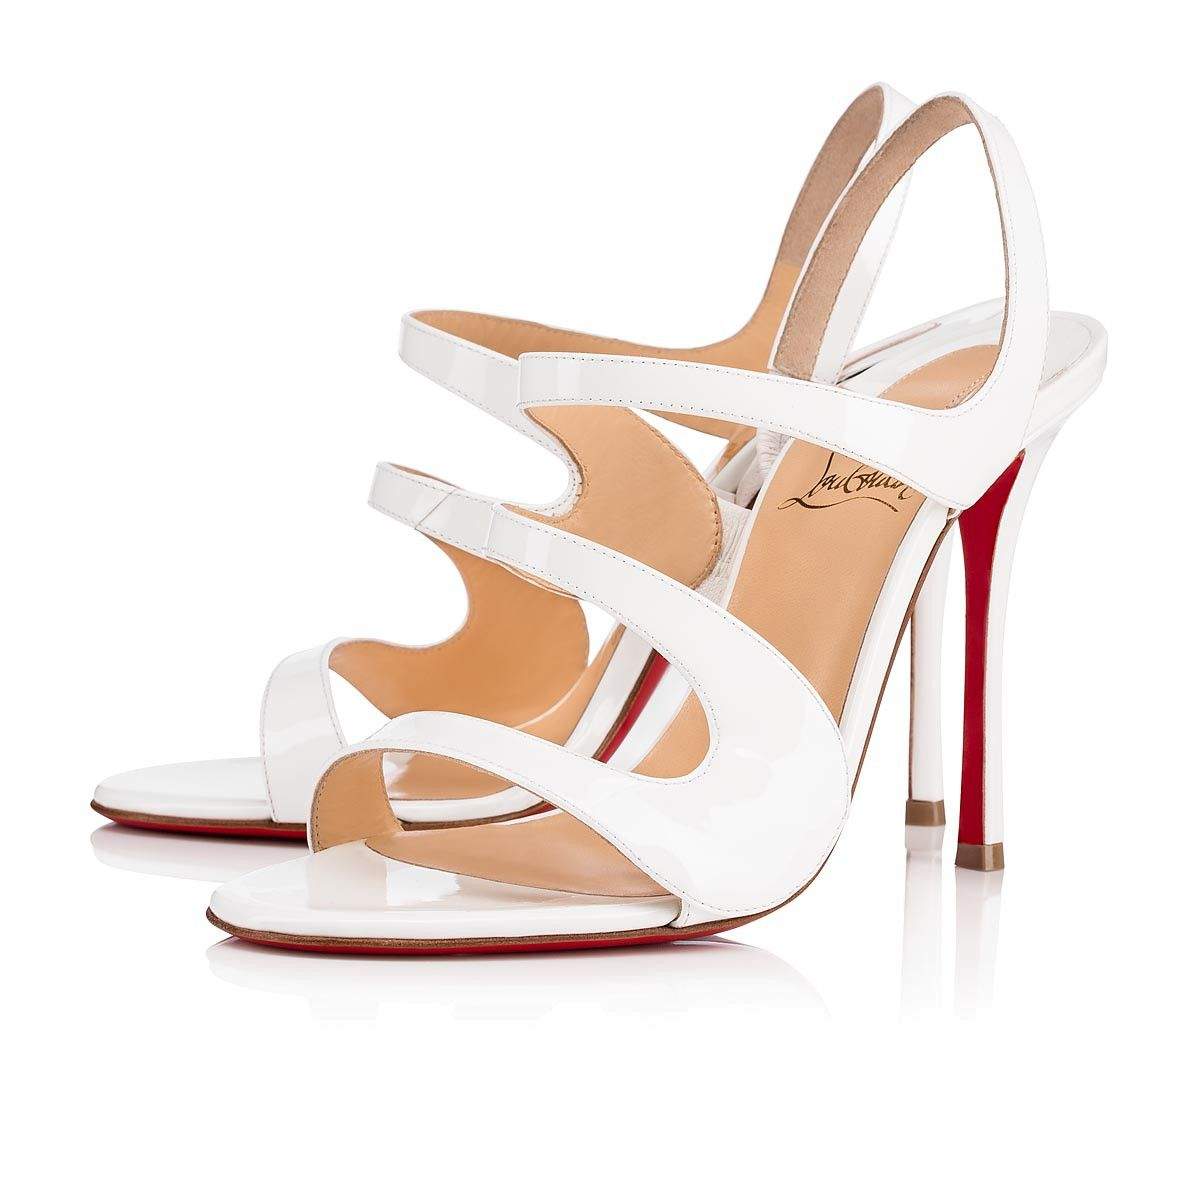 5b4f32ba001 Vavazou 100 Latte Patent Leather - Women Shoes - Christian Louboutin ...